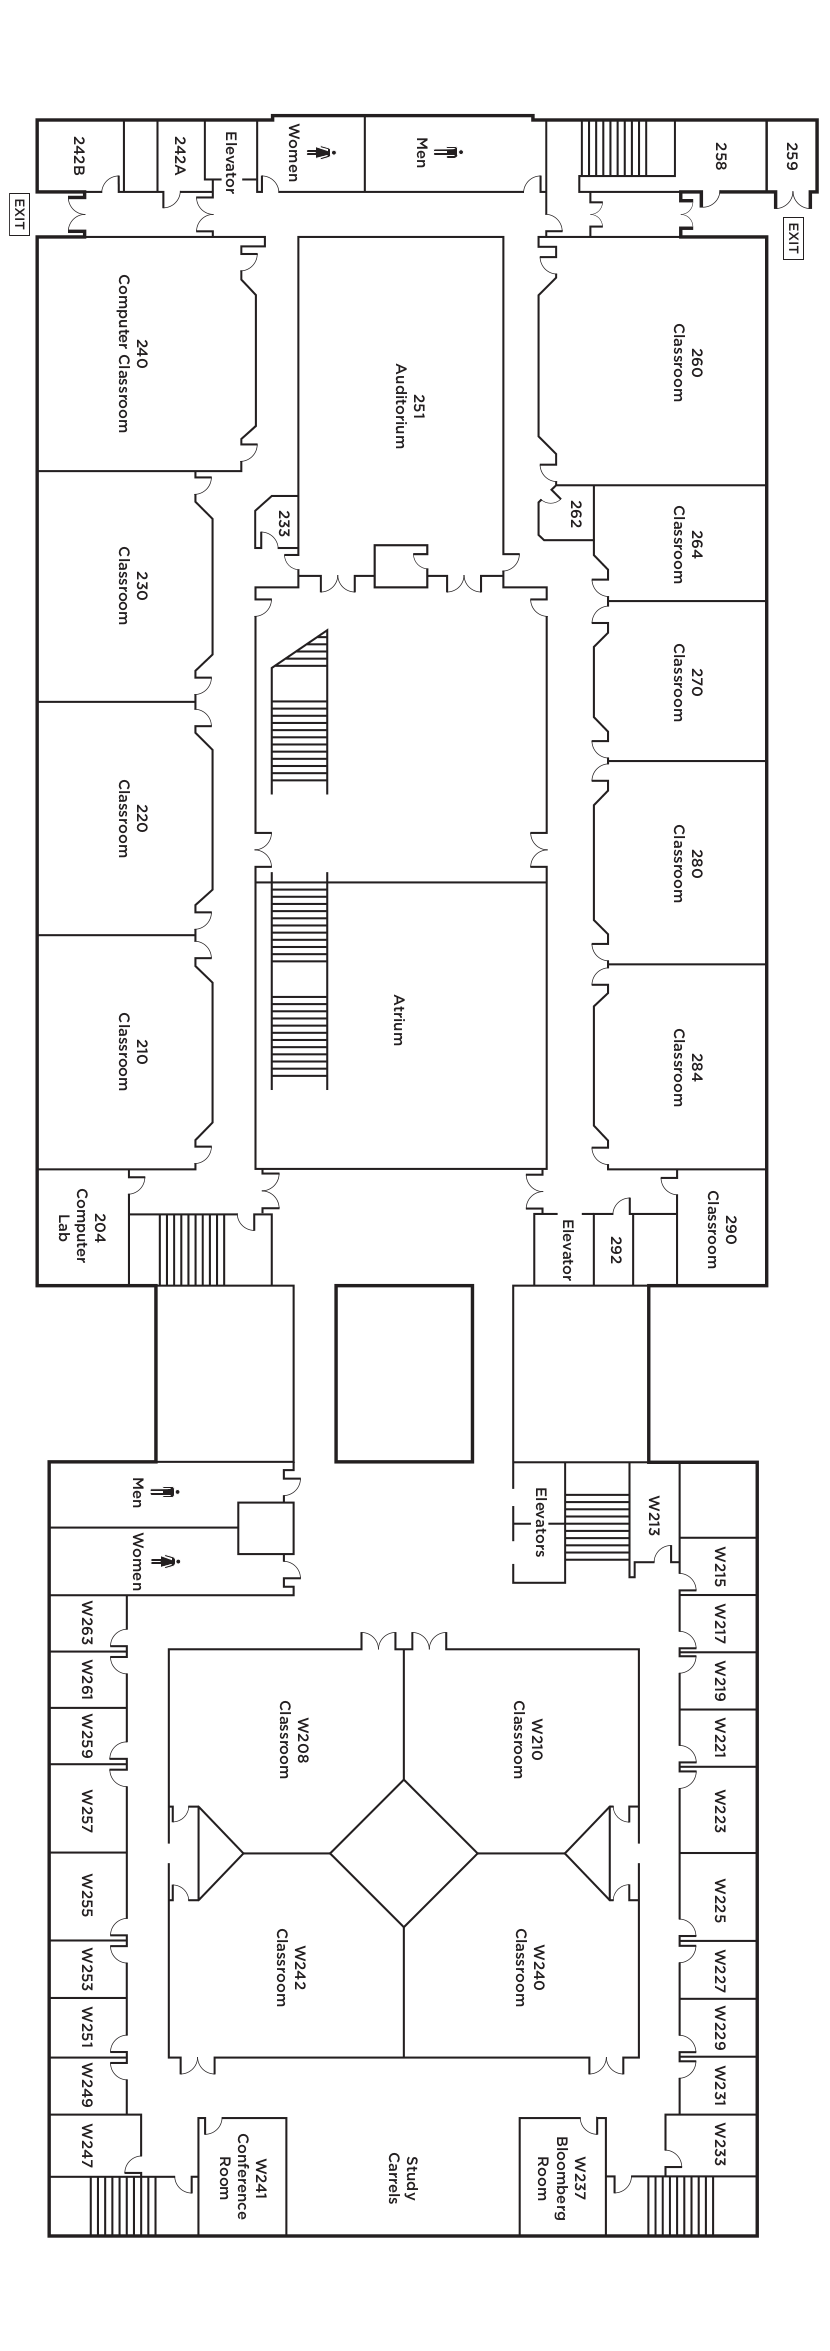 tanner building map